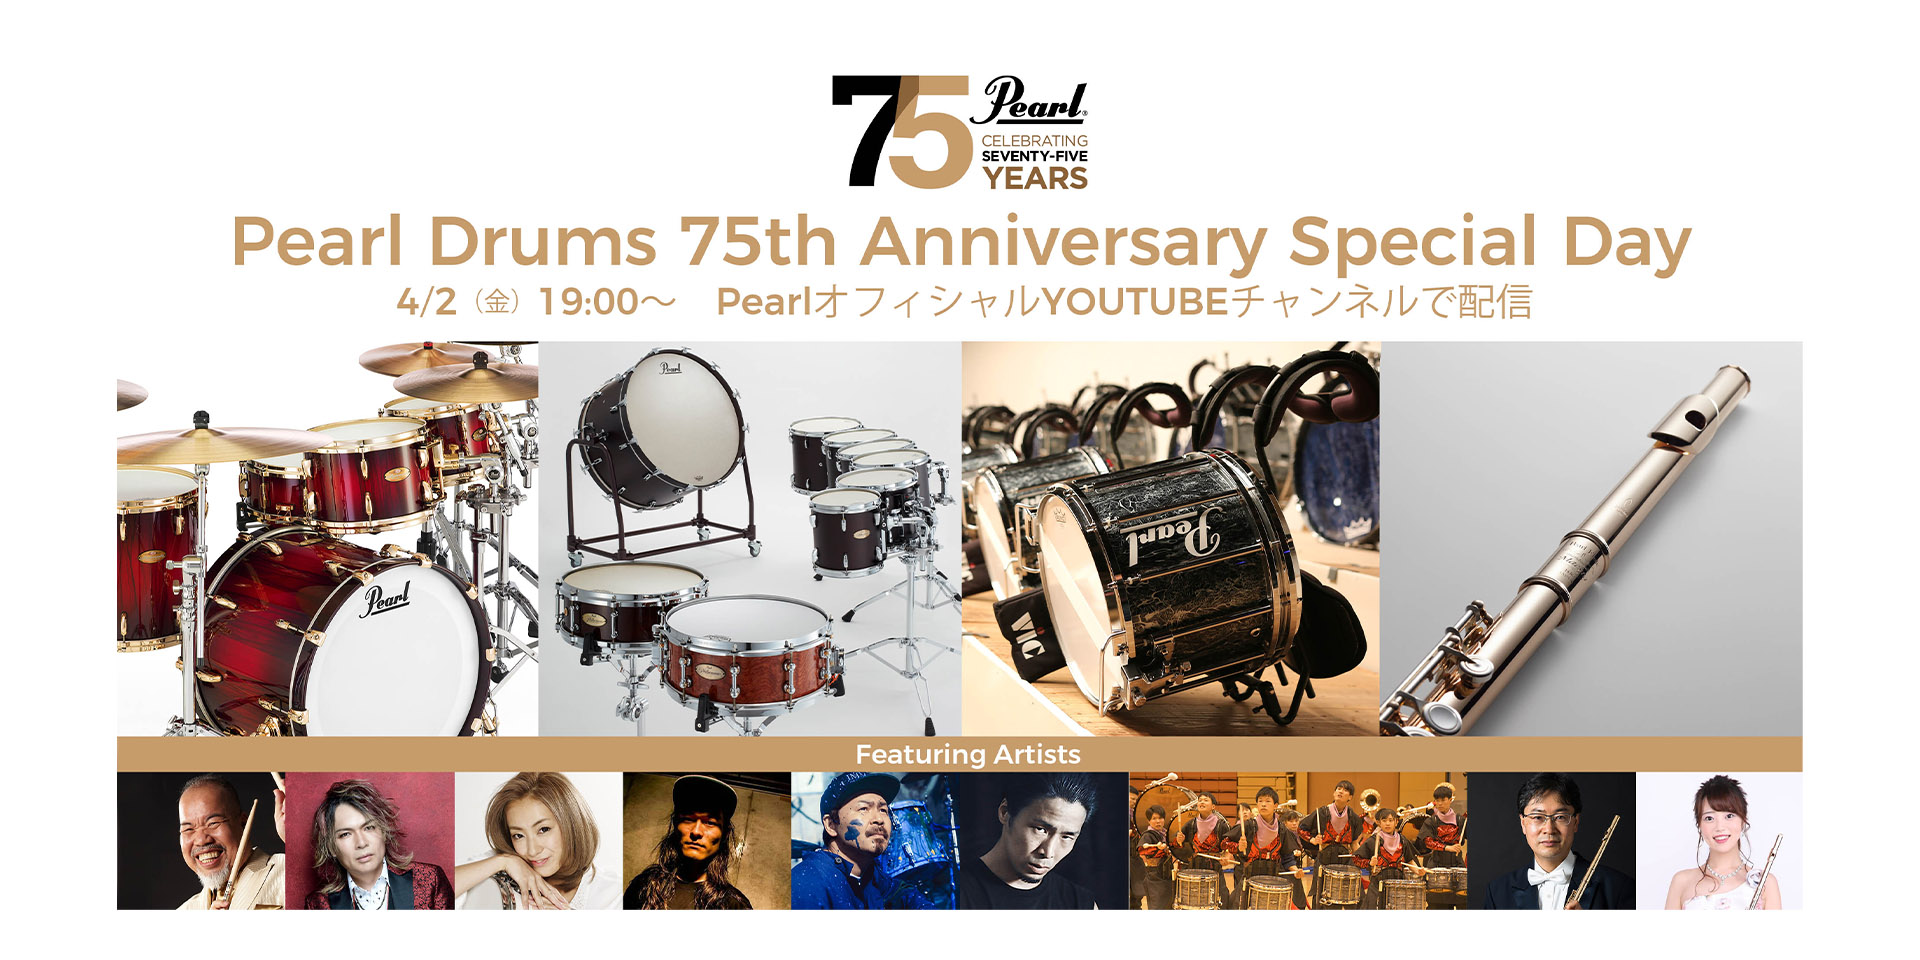 Pearl Drums 75th Anniversary Special Day